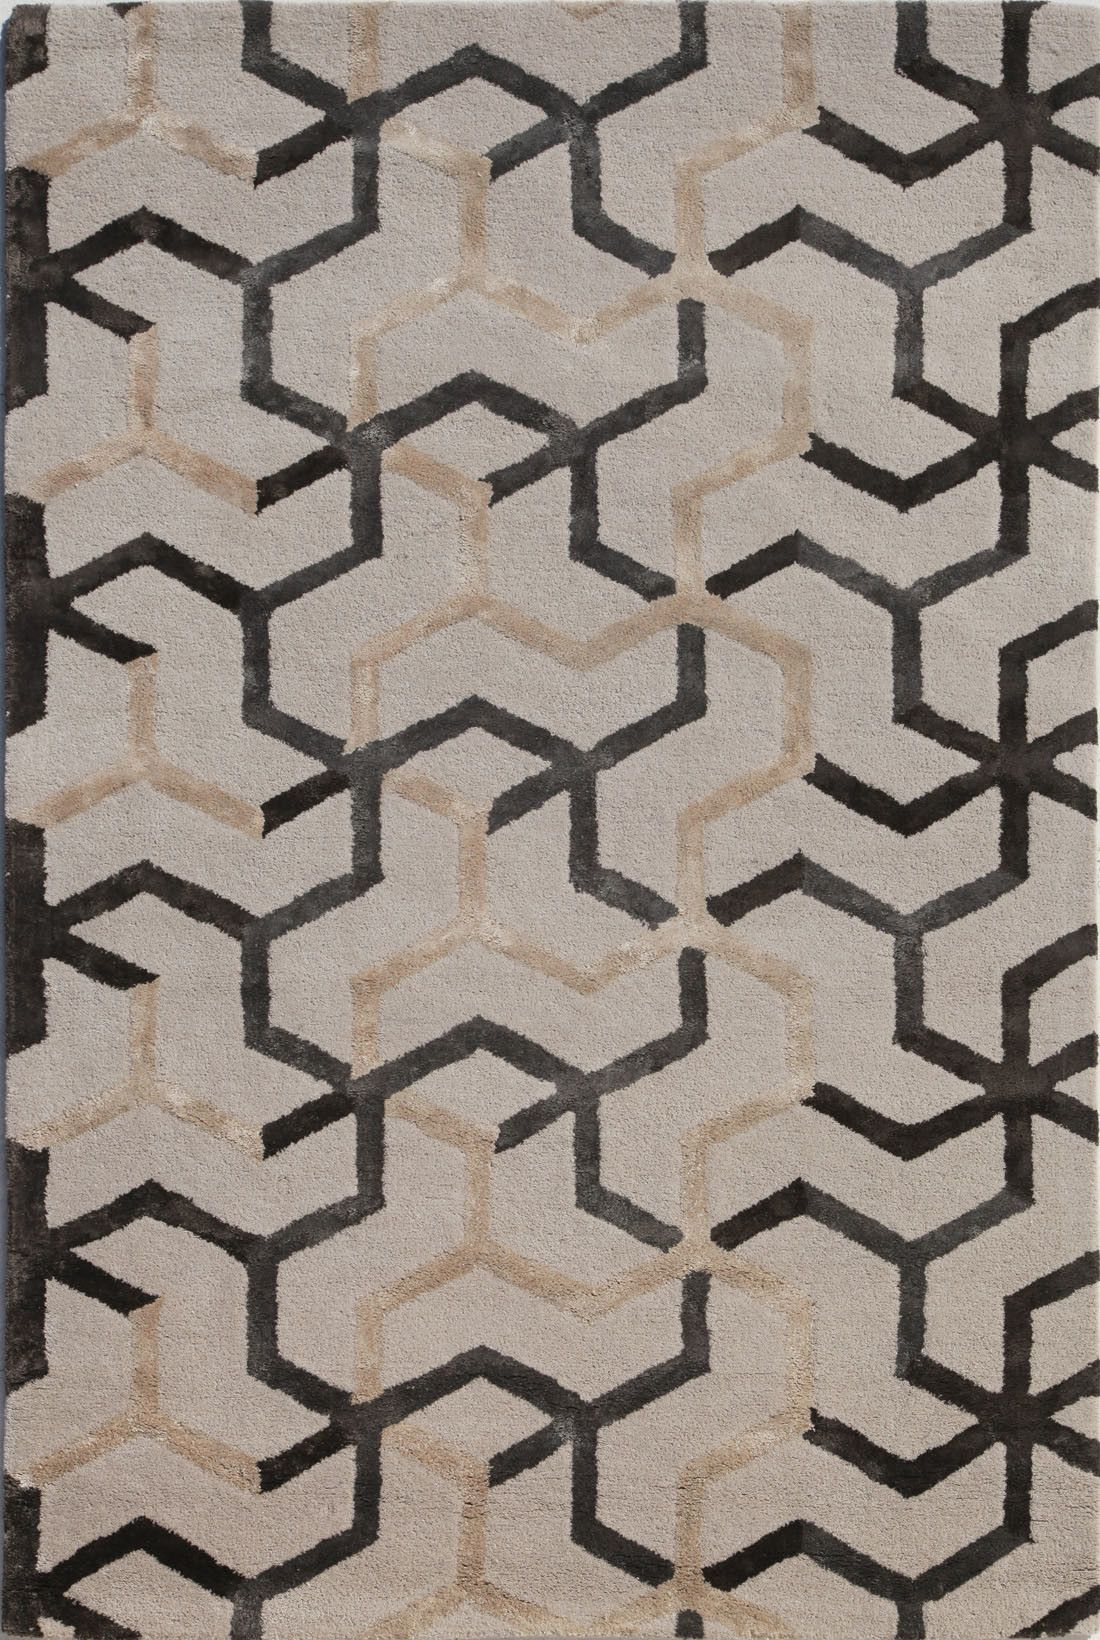 Ivory Gray Area Rug Geometric Area Rug Grey Area Rug Area Rug Collections